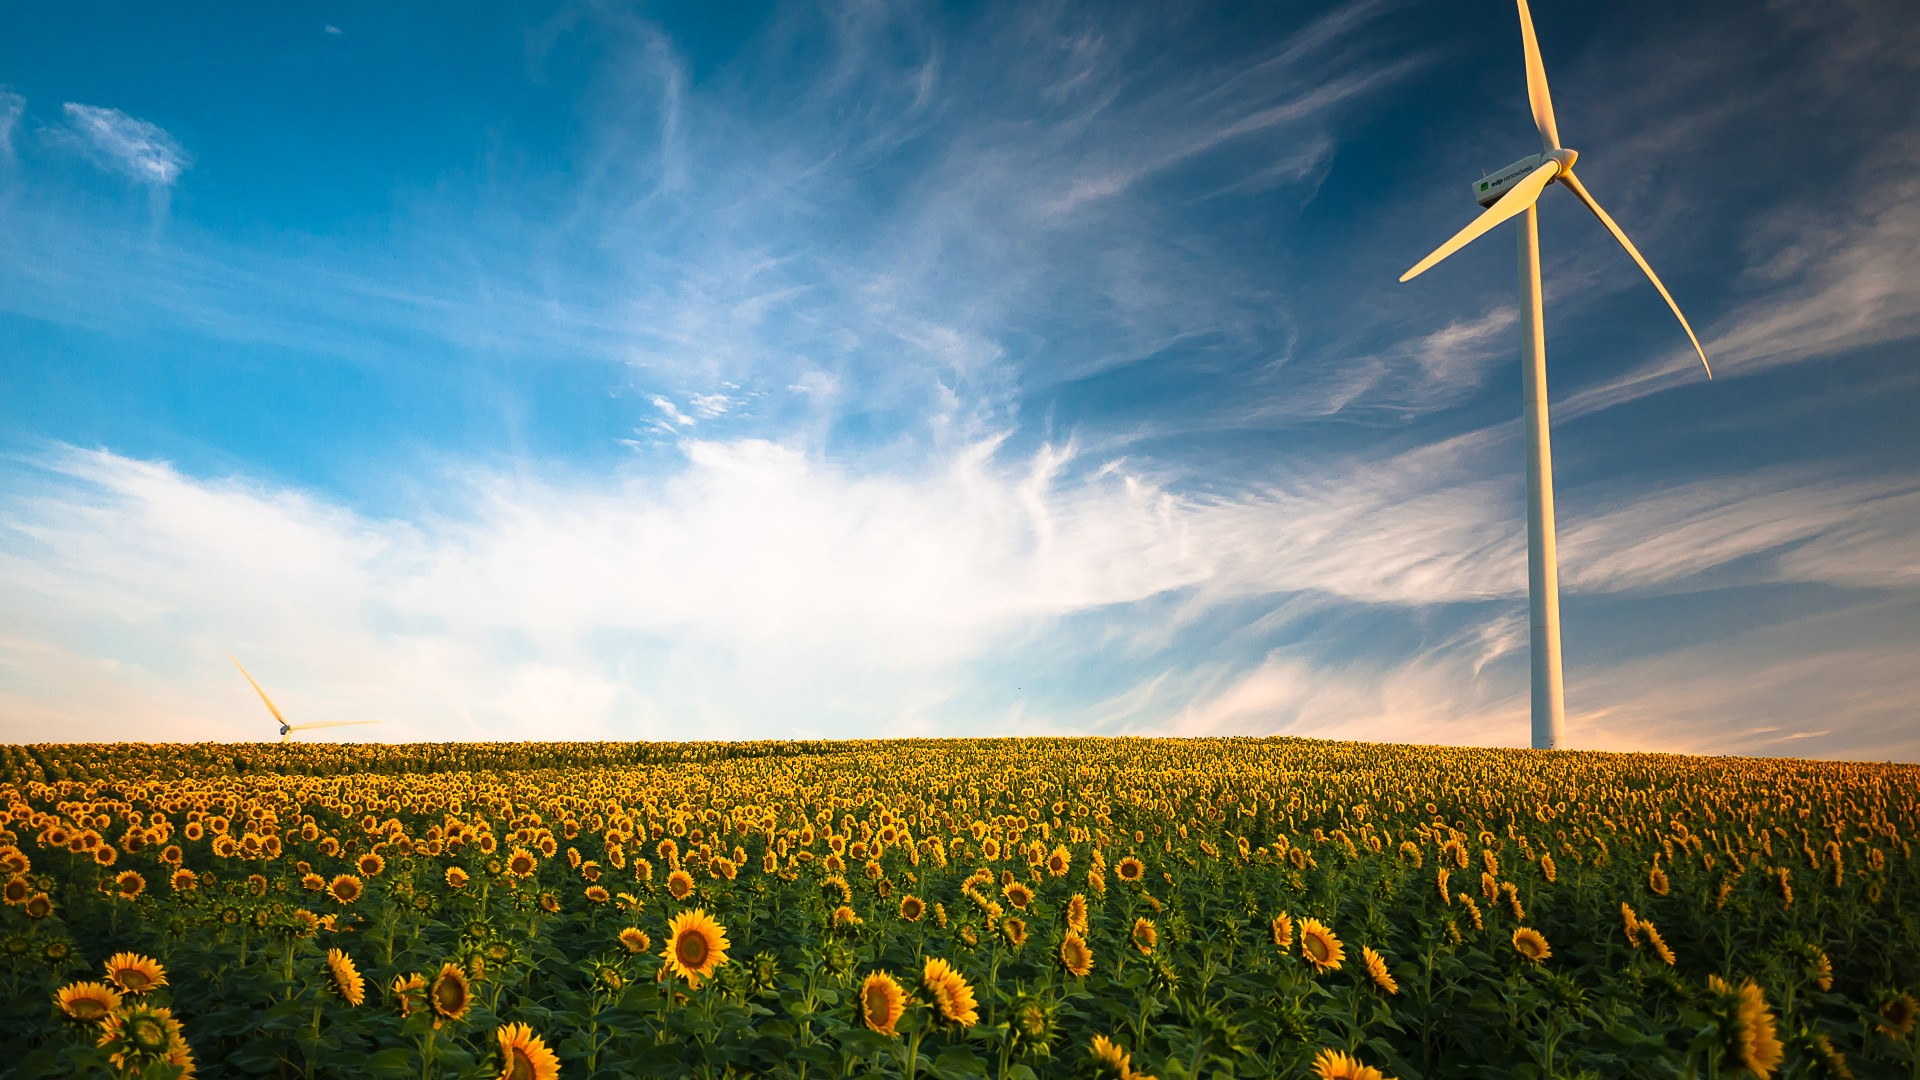 Abstract 3d Wallpapers Free Download Wind Turbine Sunflower Field 4k Wallpapers Hd Wallpapers